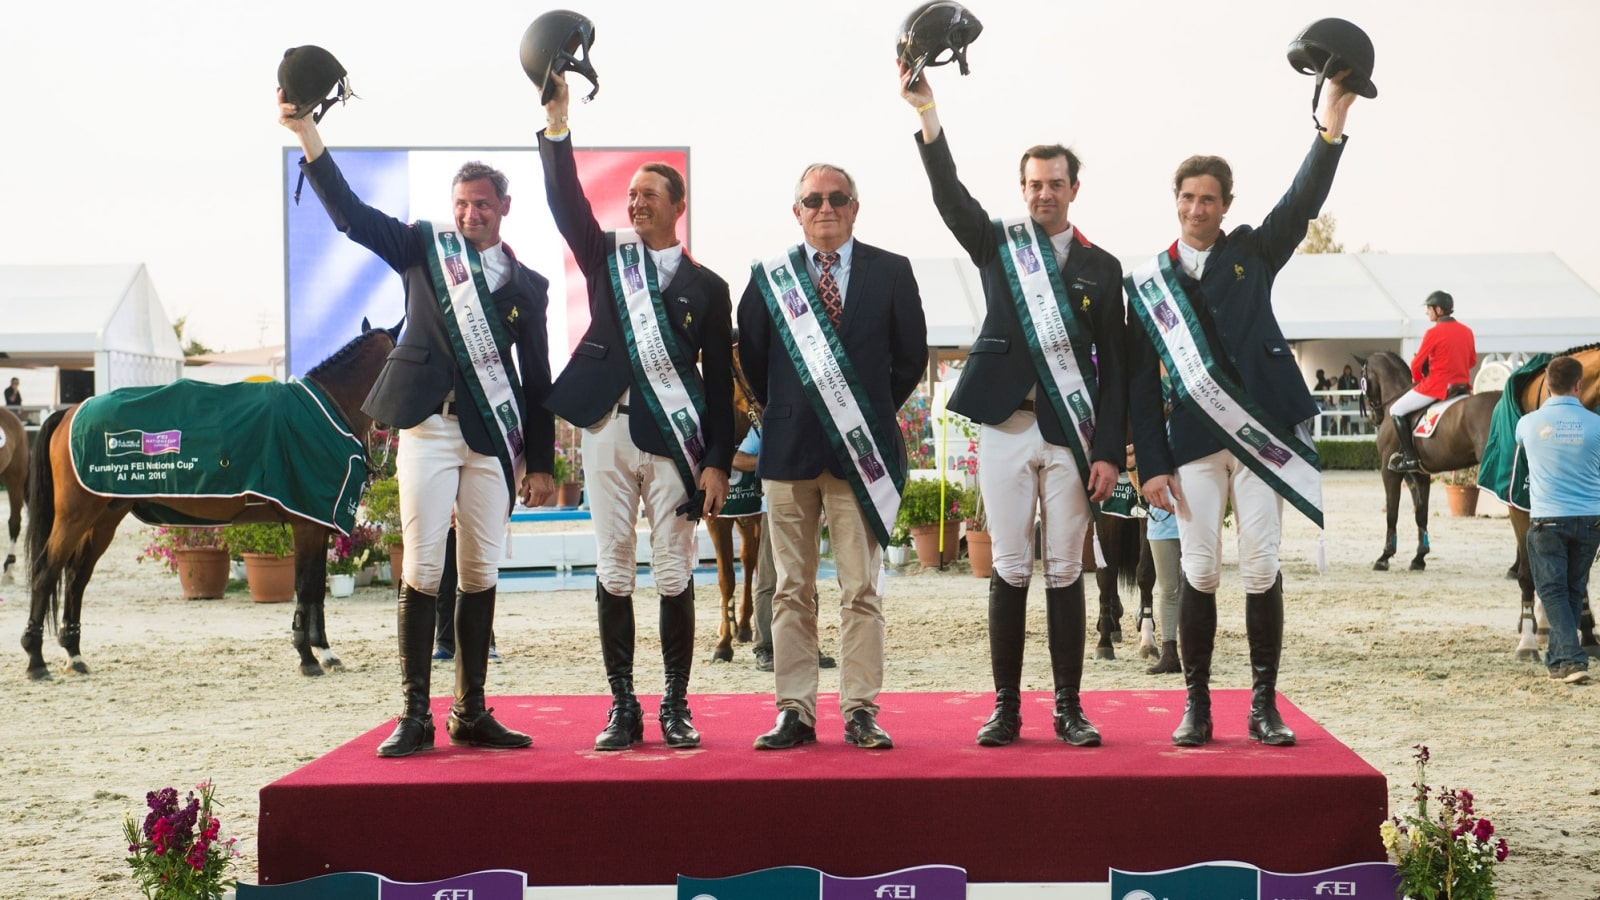 Longines ensured an elegant display of equestrian sports at the President of the UAE Show Jumping Cup presented by Longines, France, Furusiyya FEI Nations Cup, Grand Prix, Official Partner